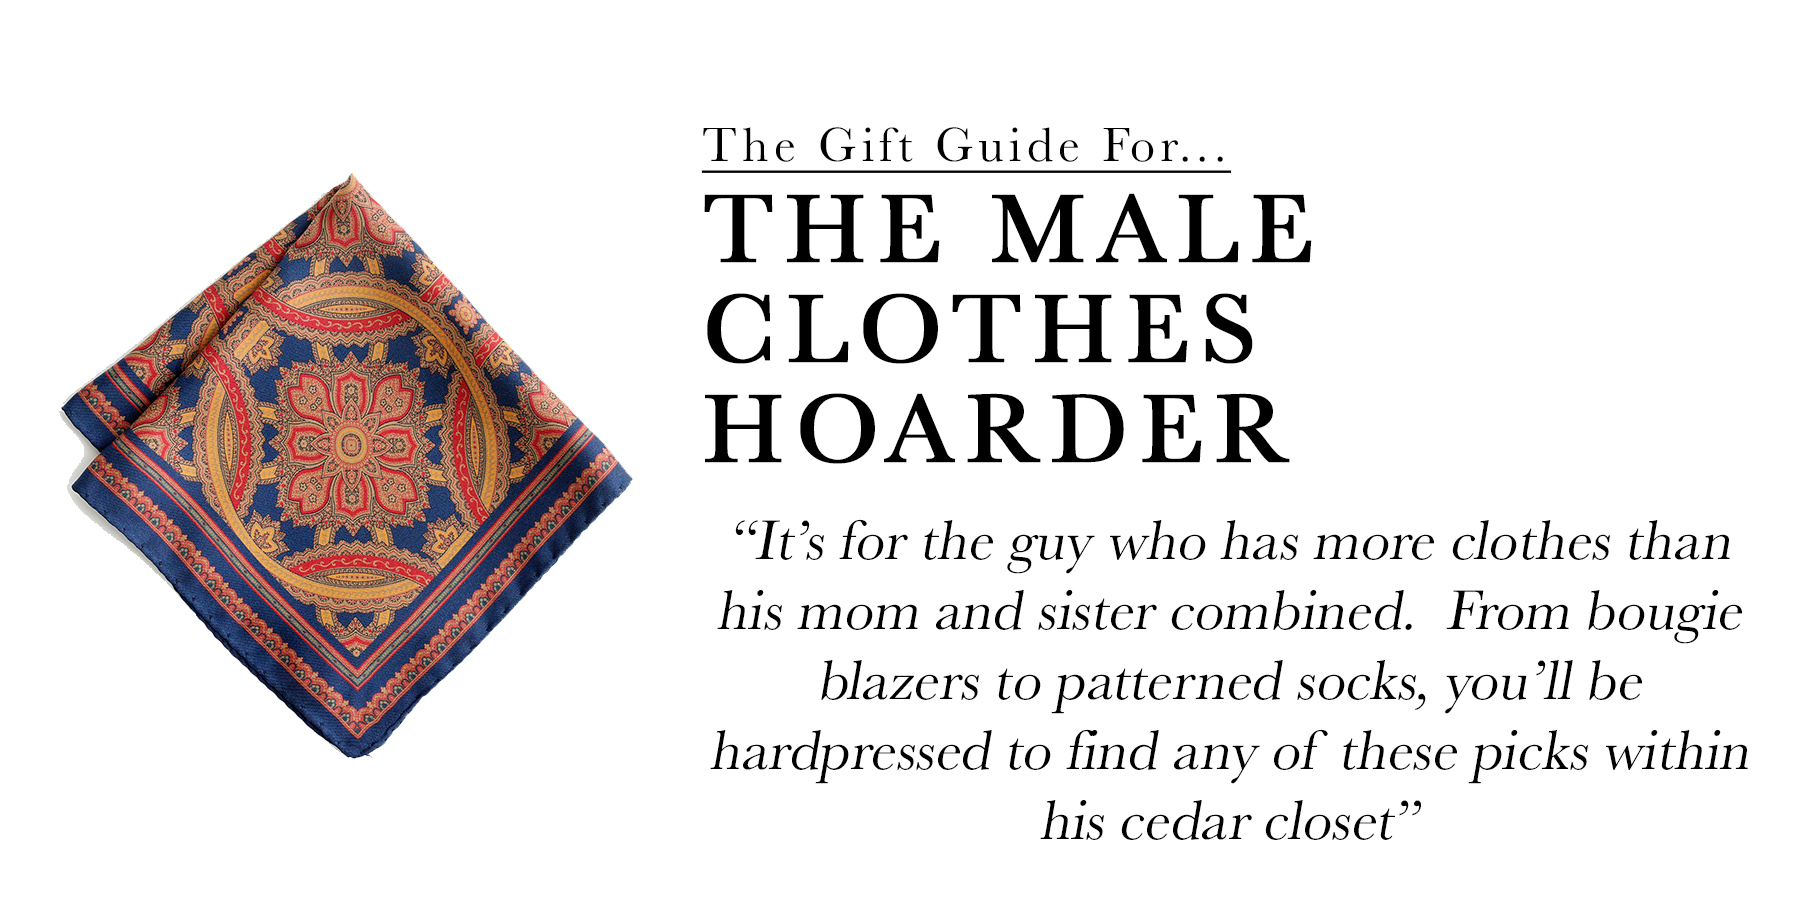 The Male Clothes Hoarder.jpg